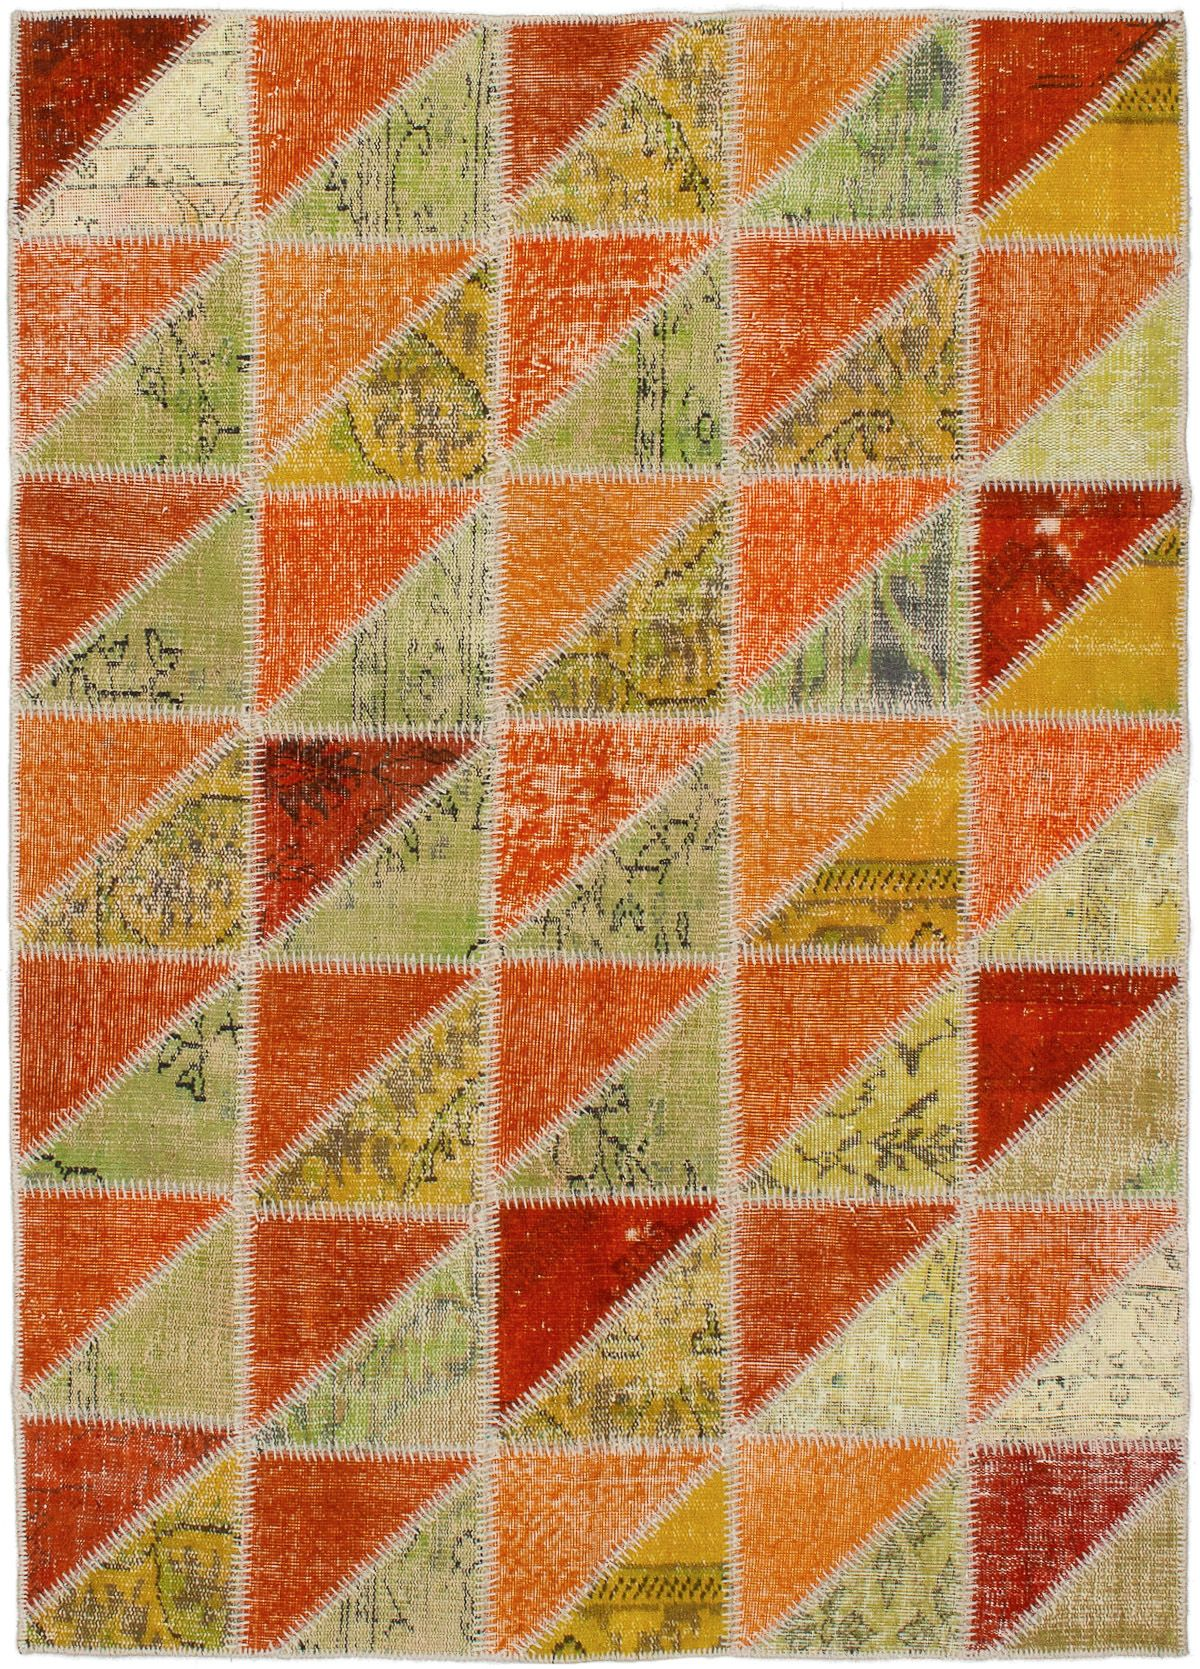 """Hand-knotted Color Transition Patch Khaki, Orange Wool Rug 4'10"""" x 6'11"""" Size: 4'10"""" x 6'11"""""""